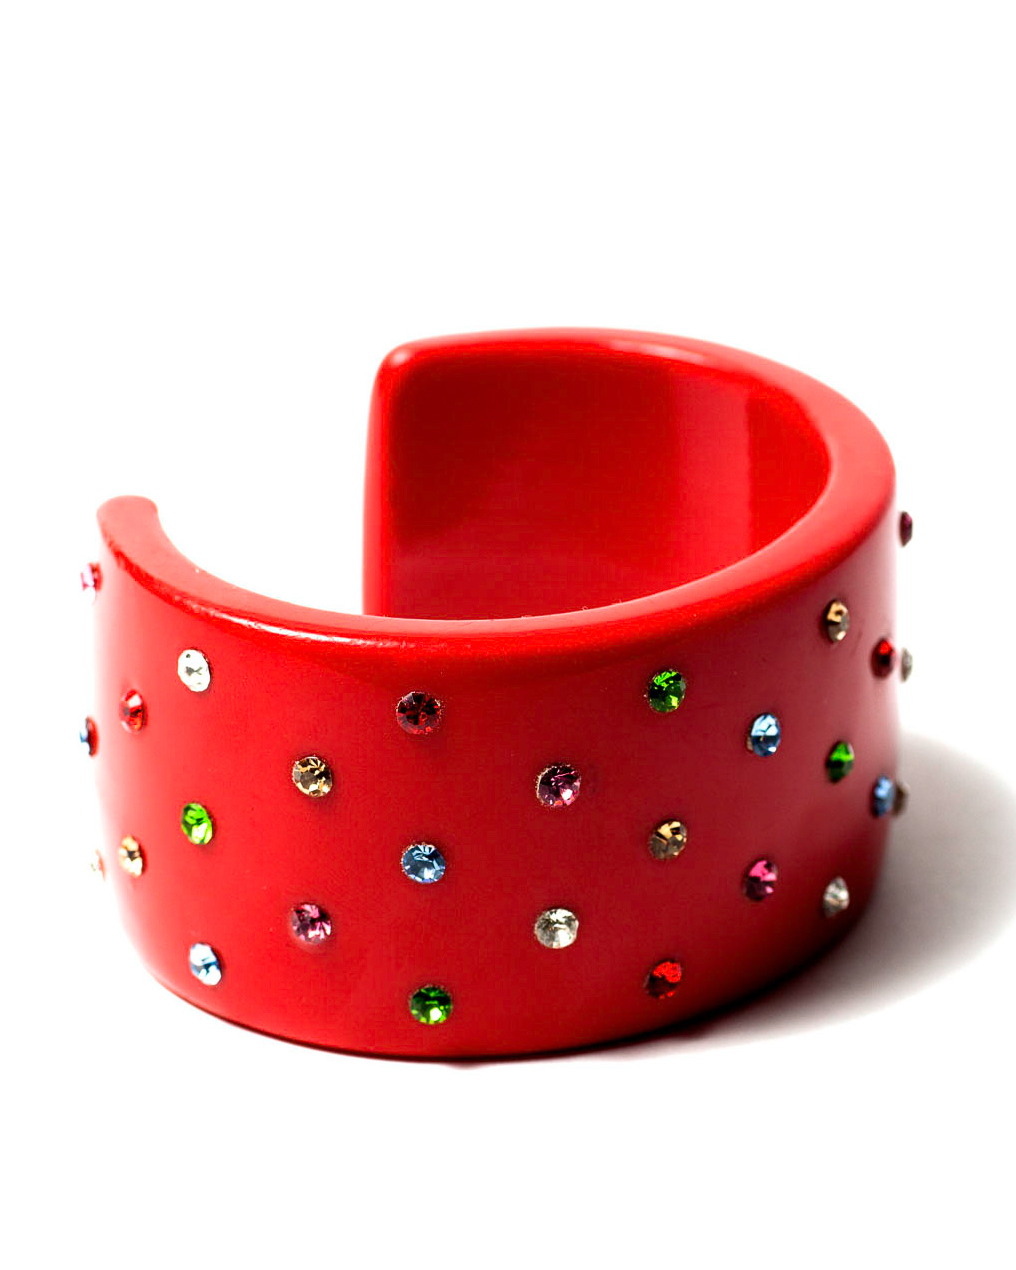 Vintage Red French Bakelite and Multi Colored Rhinestone Cuff Bracelet, circa 1930's